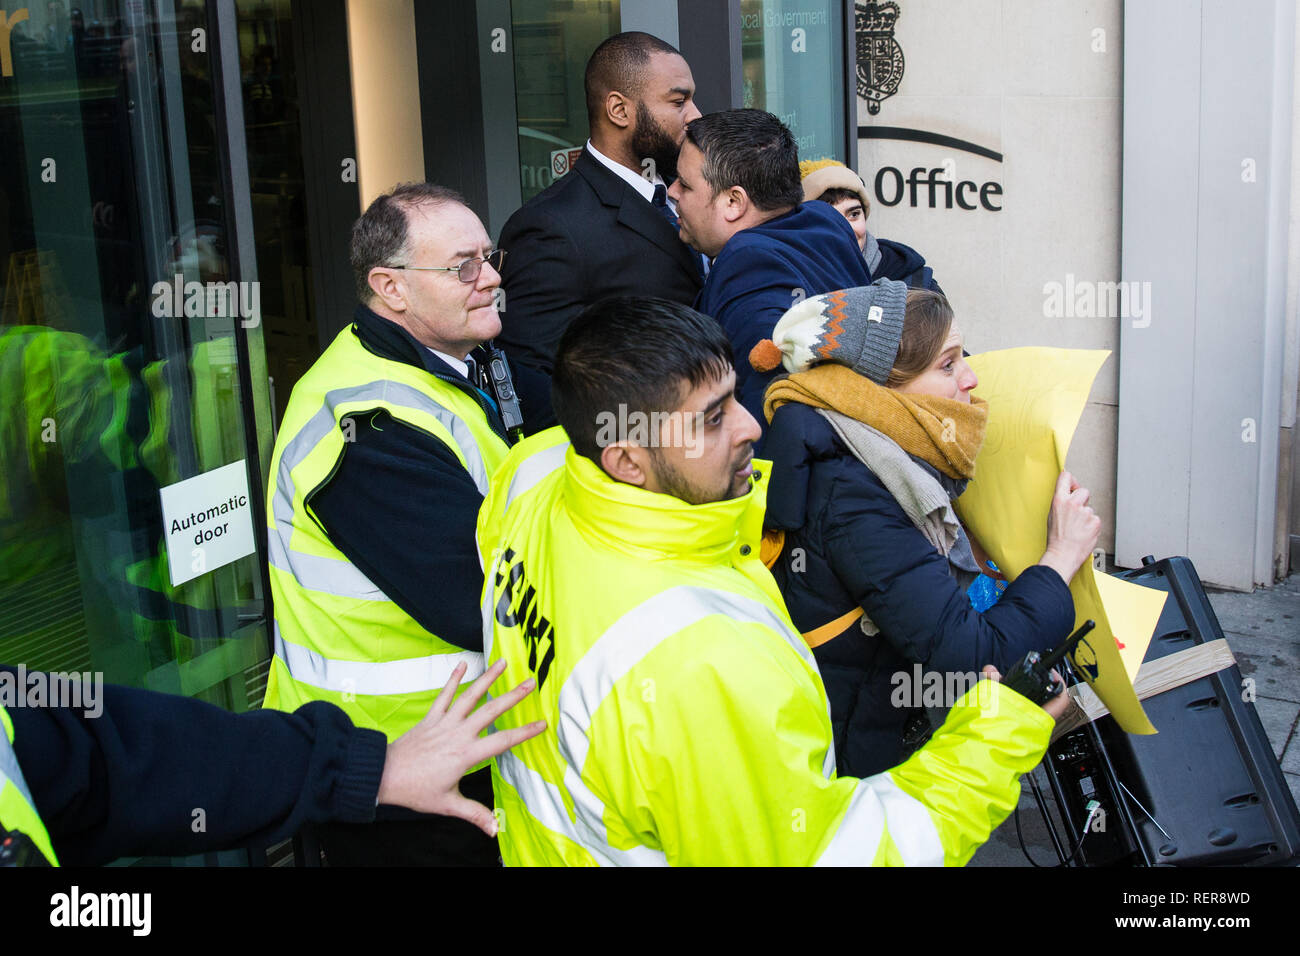 London, UK. 22nd Jan, 2019. Members of the United Voices of the World (UVW) trade union representing receptionists, security guards and cleaners at the Ministry of Justice (MoJ) try to storm the entrance of the Home Office after beginning a coordinated strike for the London Living Wage of £10.55 per hour and parity of sick pay and annual leave allowance with civil servants. The strike is being coordinated with support staff at the Department for Business, Energy and Industrial Strategy (BEIS) from the Public and Commercial Services (PCS) union. Credit: Mark Kerrison/Alamy Live News Stock Photo